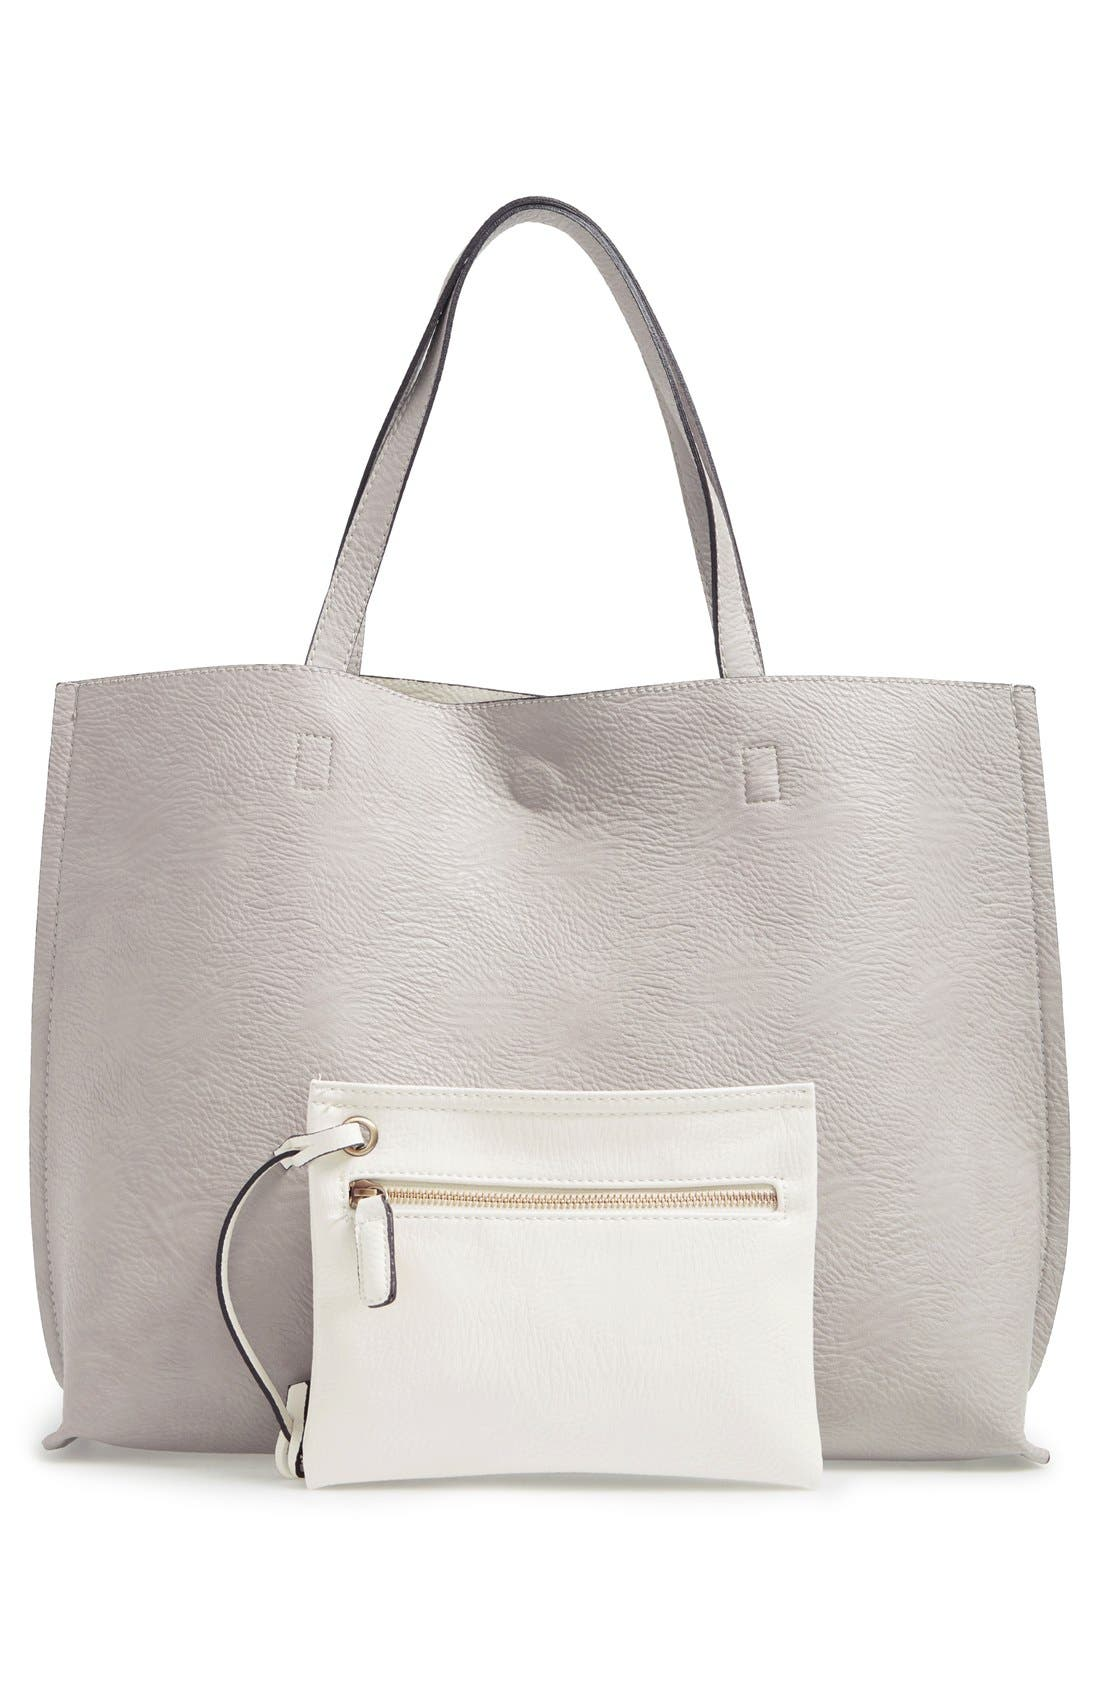 Reversible Faux Leather Tote & Wristlet,                         Main,                         color, Grey/ Ivory